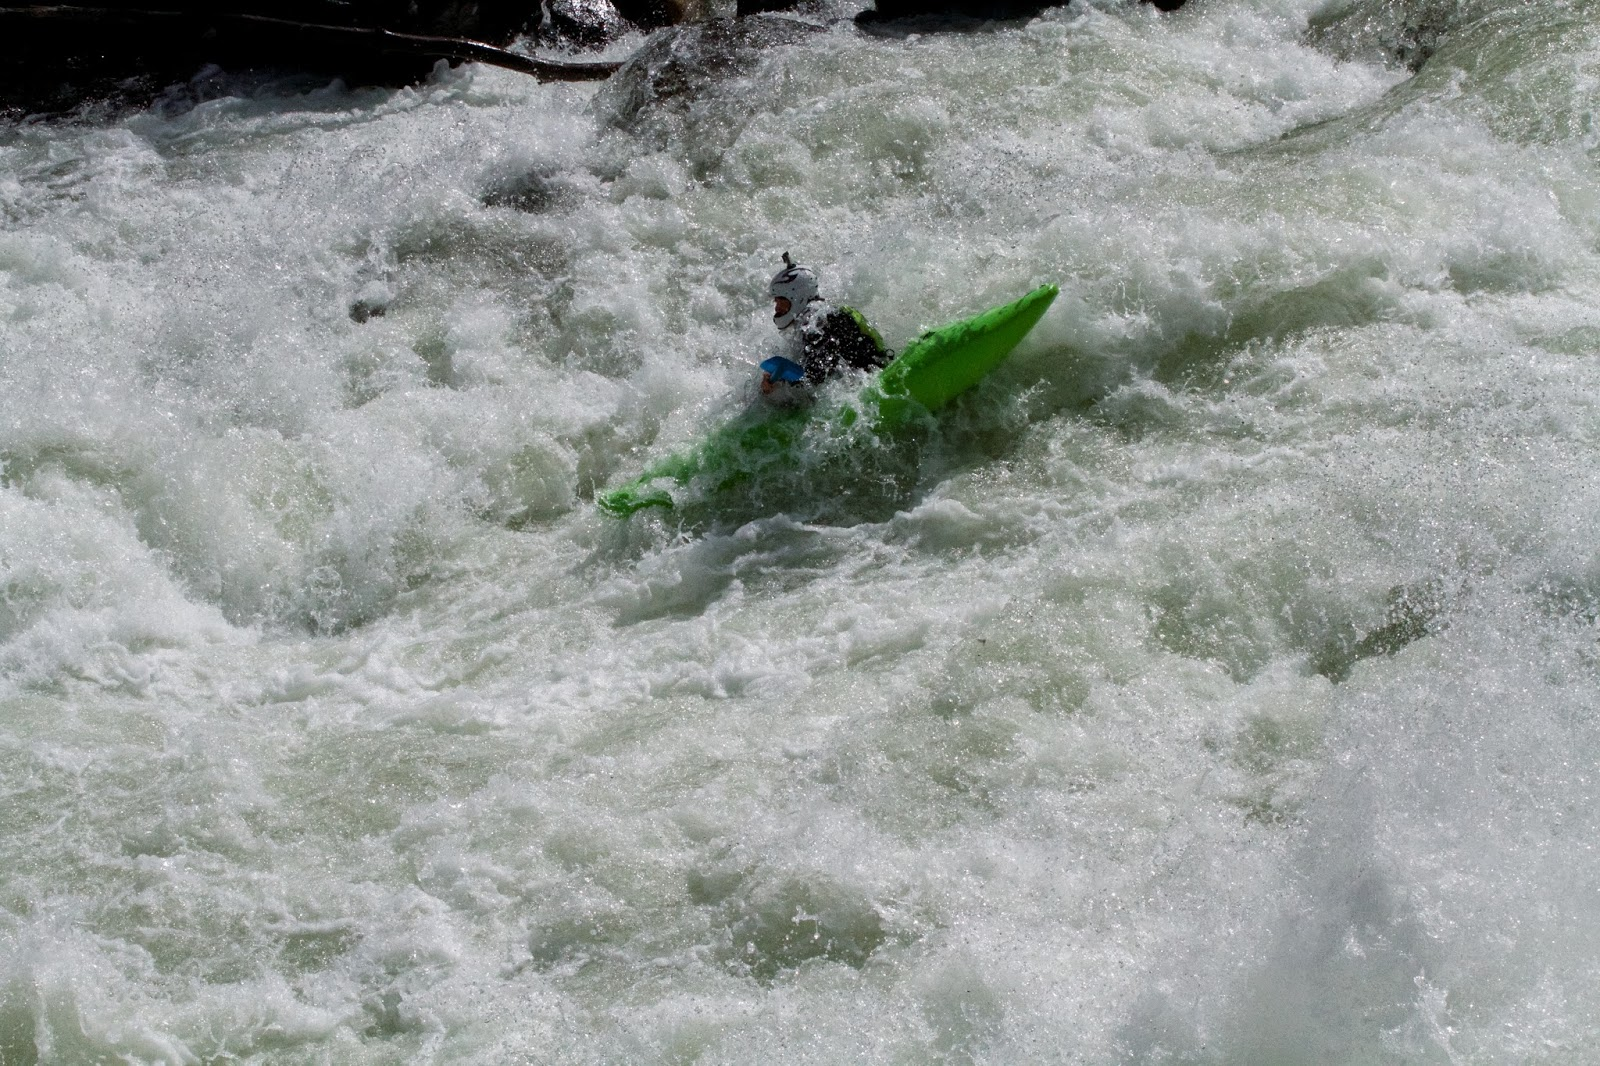 Sam Grafton, Tumwater Canyon Kayaking, Tumwater Canyon, Wenatchee River Kayaking, Kokatat, Sweet Protection, Werner Paddles, Dagger Mamba 8.6, 2014 Dagger Mamba 8.6, New Mamba 8.6, Chaos, POW, Last Exit, The Wall